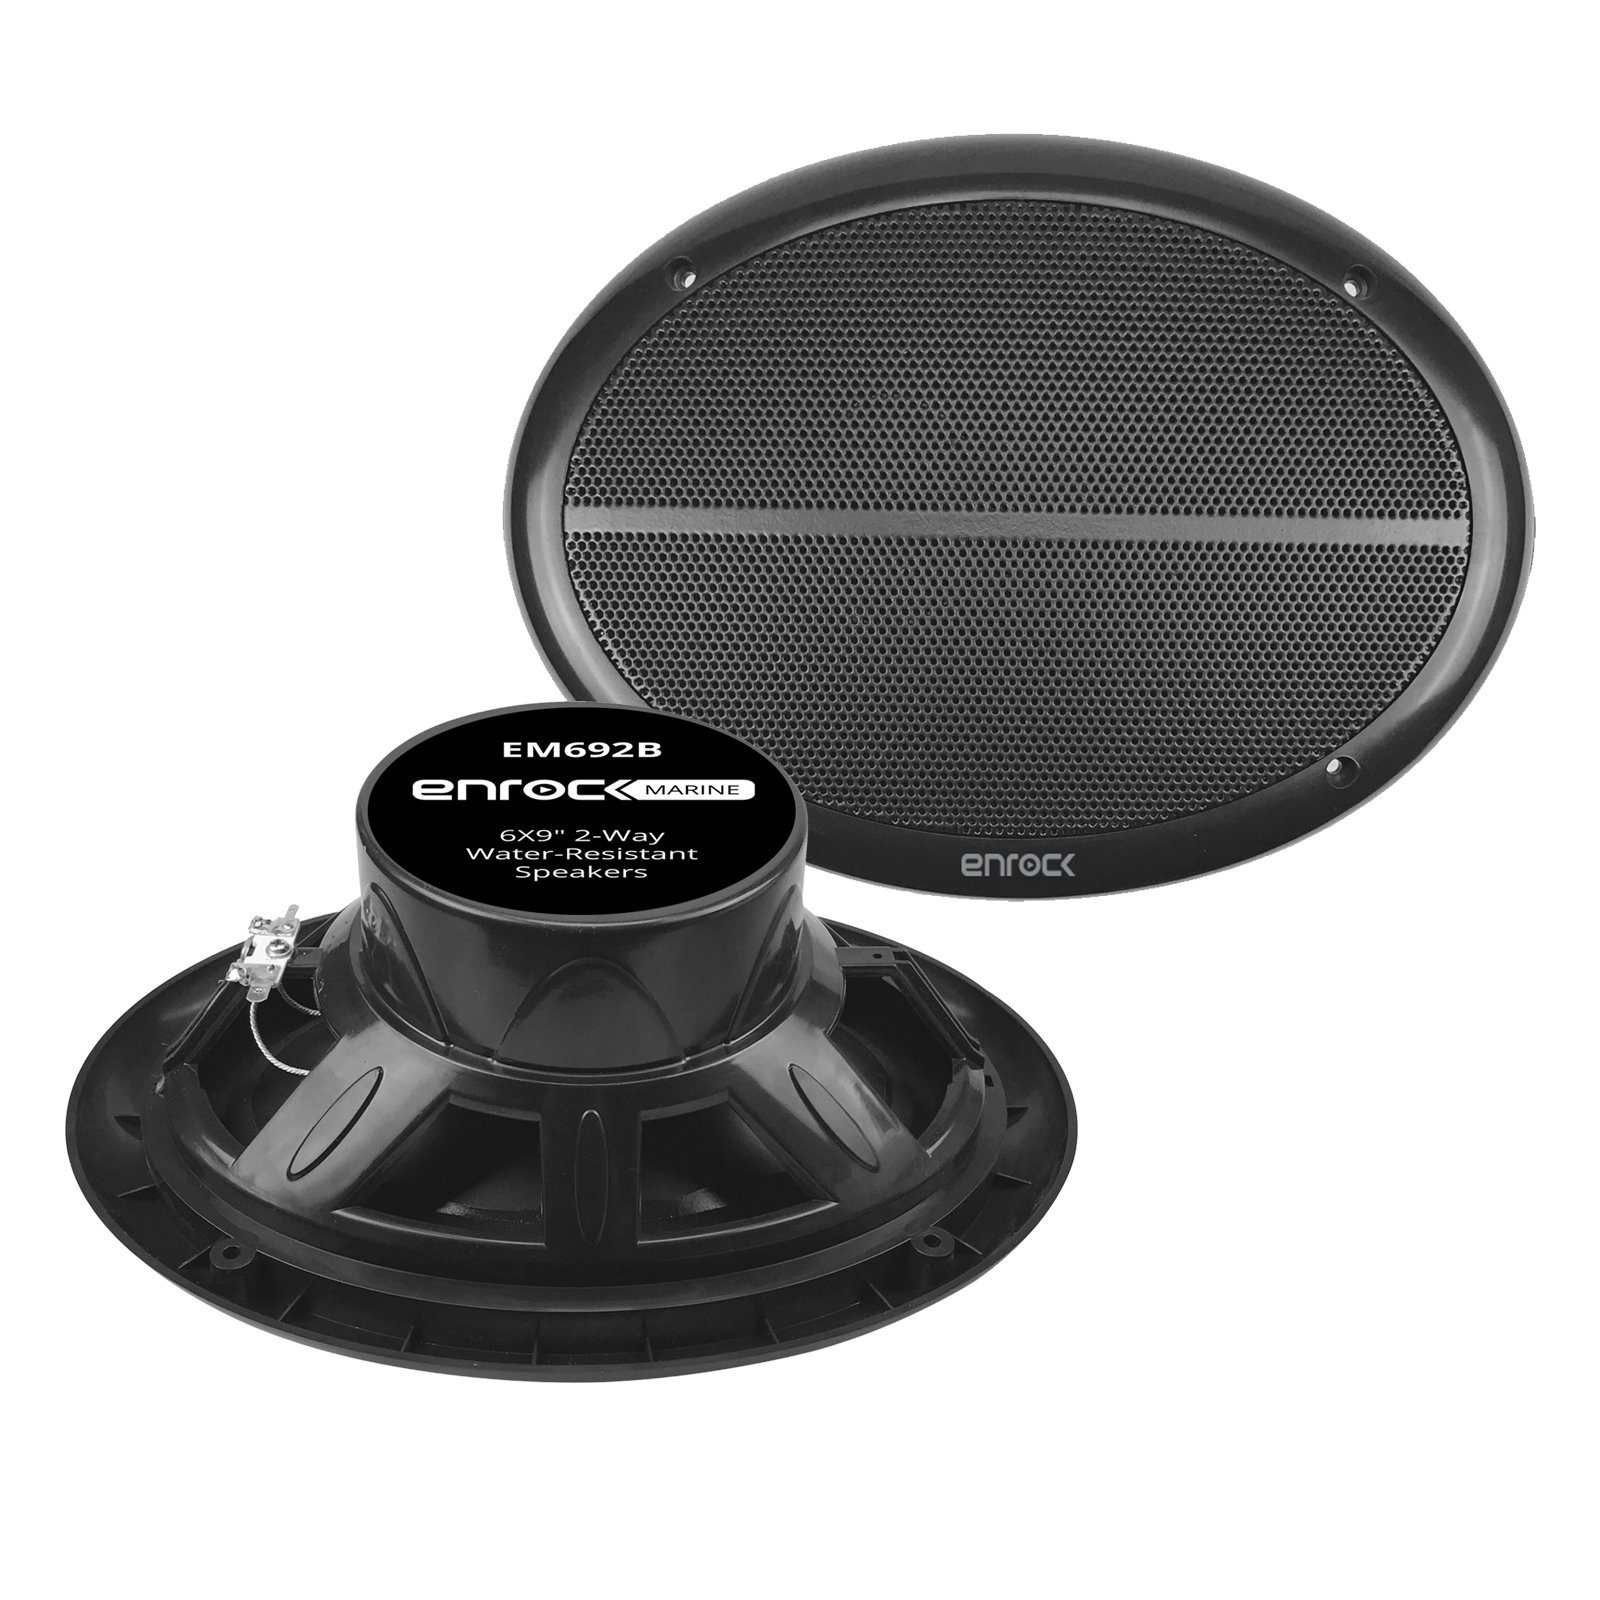 Enrock Marine EM692B Black Dual 6X9'' Inch Weather Resistant Full Range Speakers 250 Watts Peak (Pair) by EnrockMarine